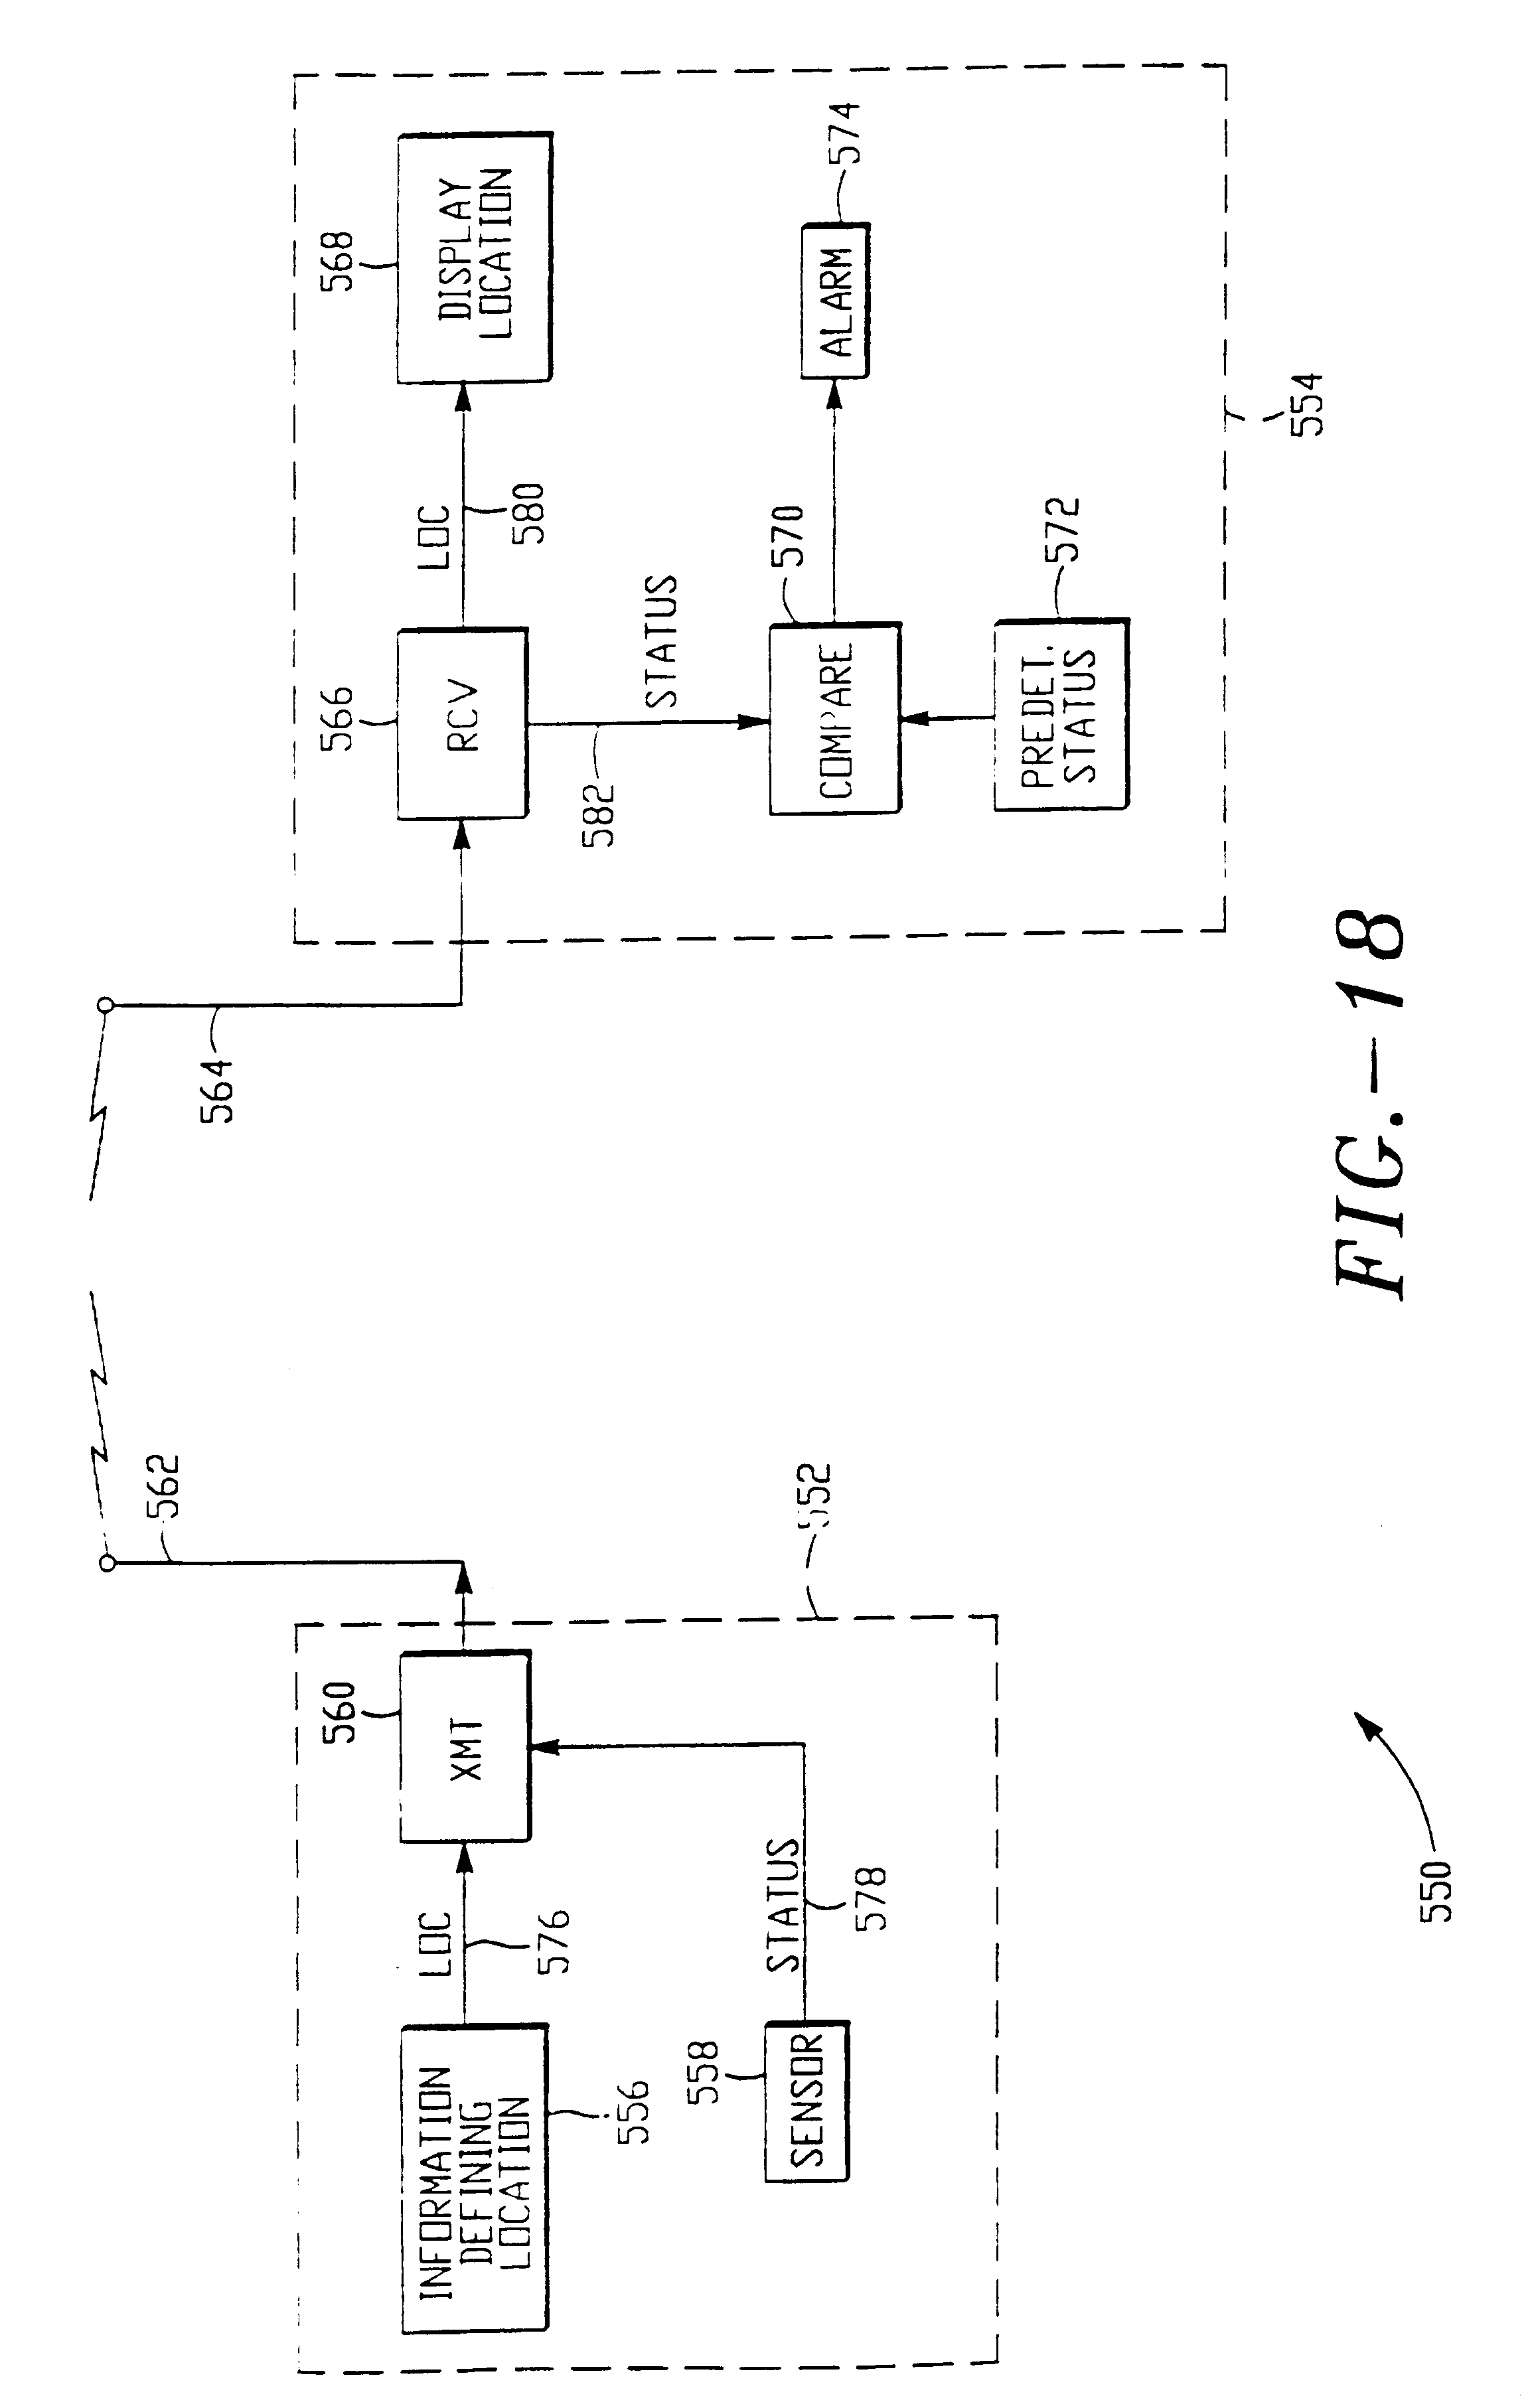 Patent Us 6198390 B1 Relay Toggle Circuit Using A 556 Timer Litigations